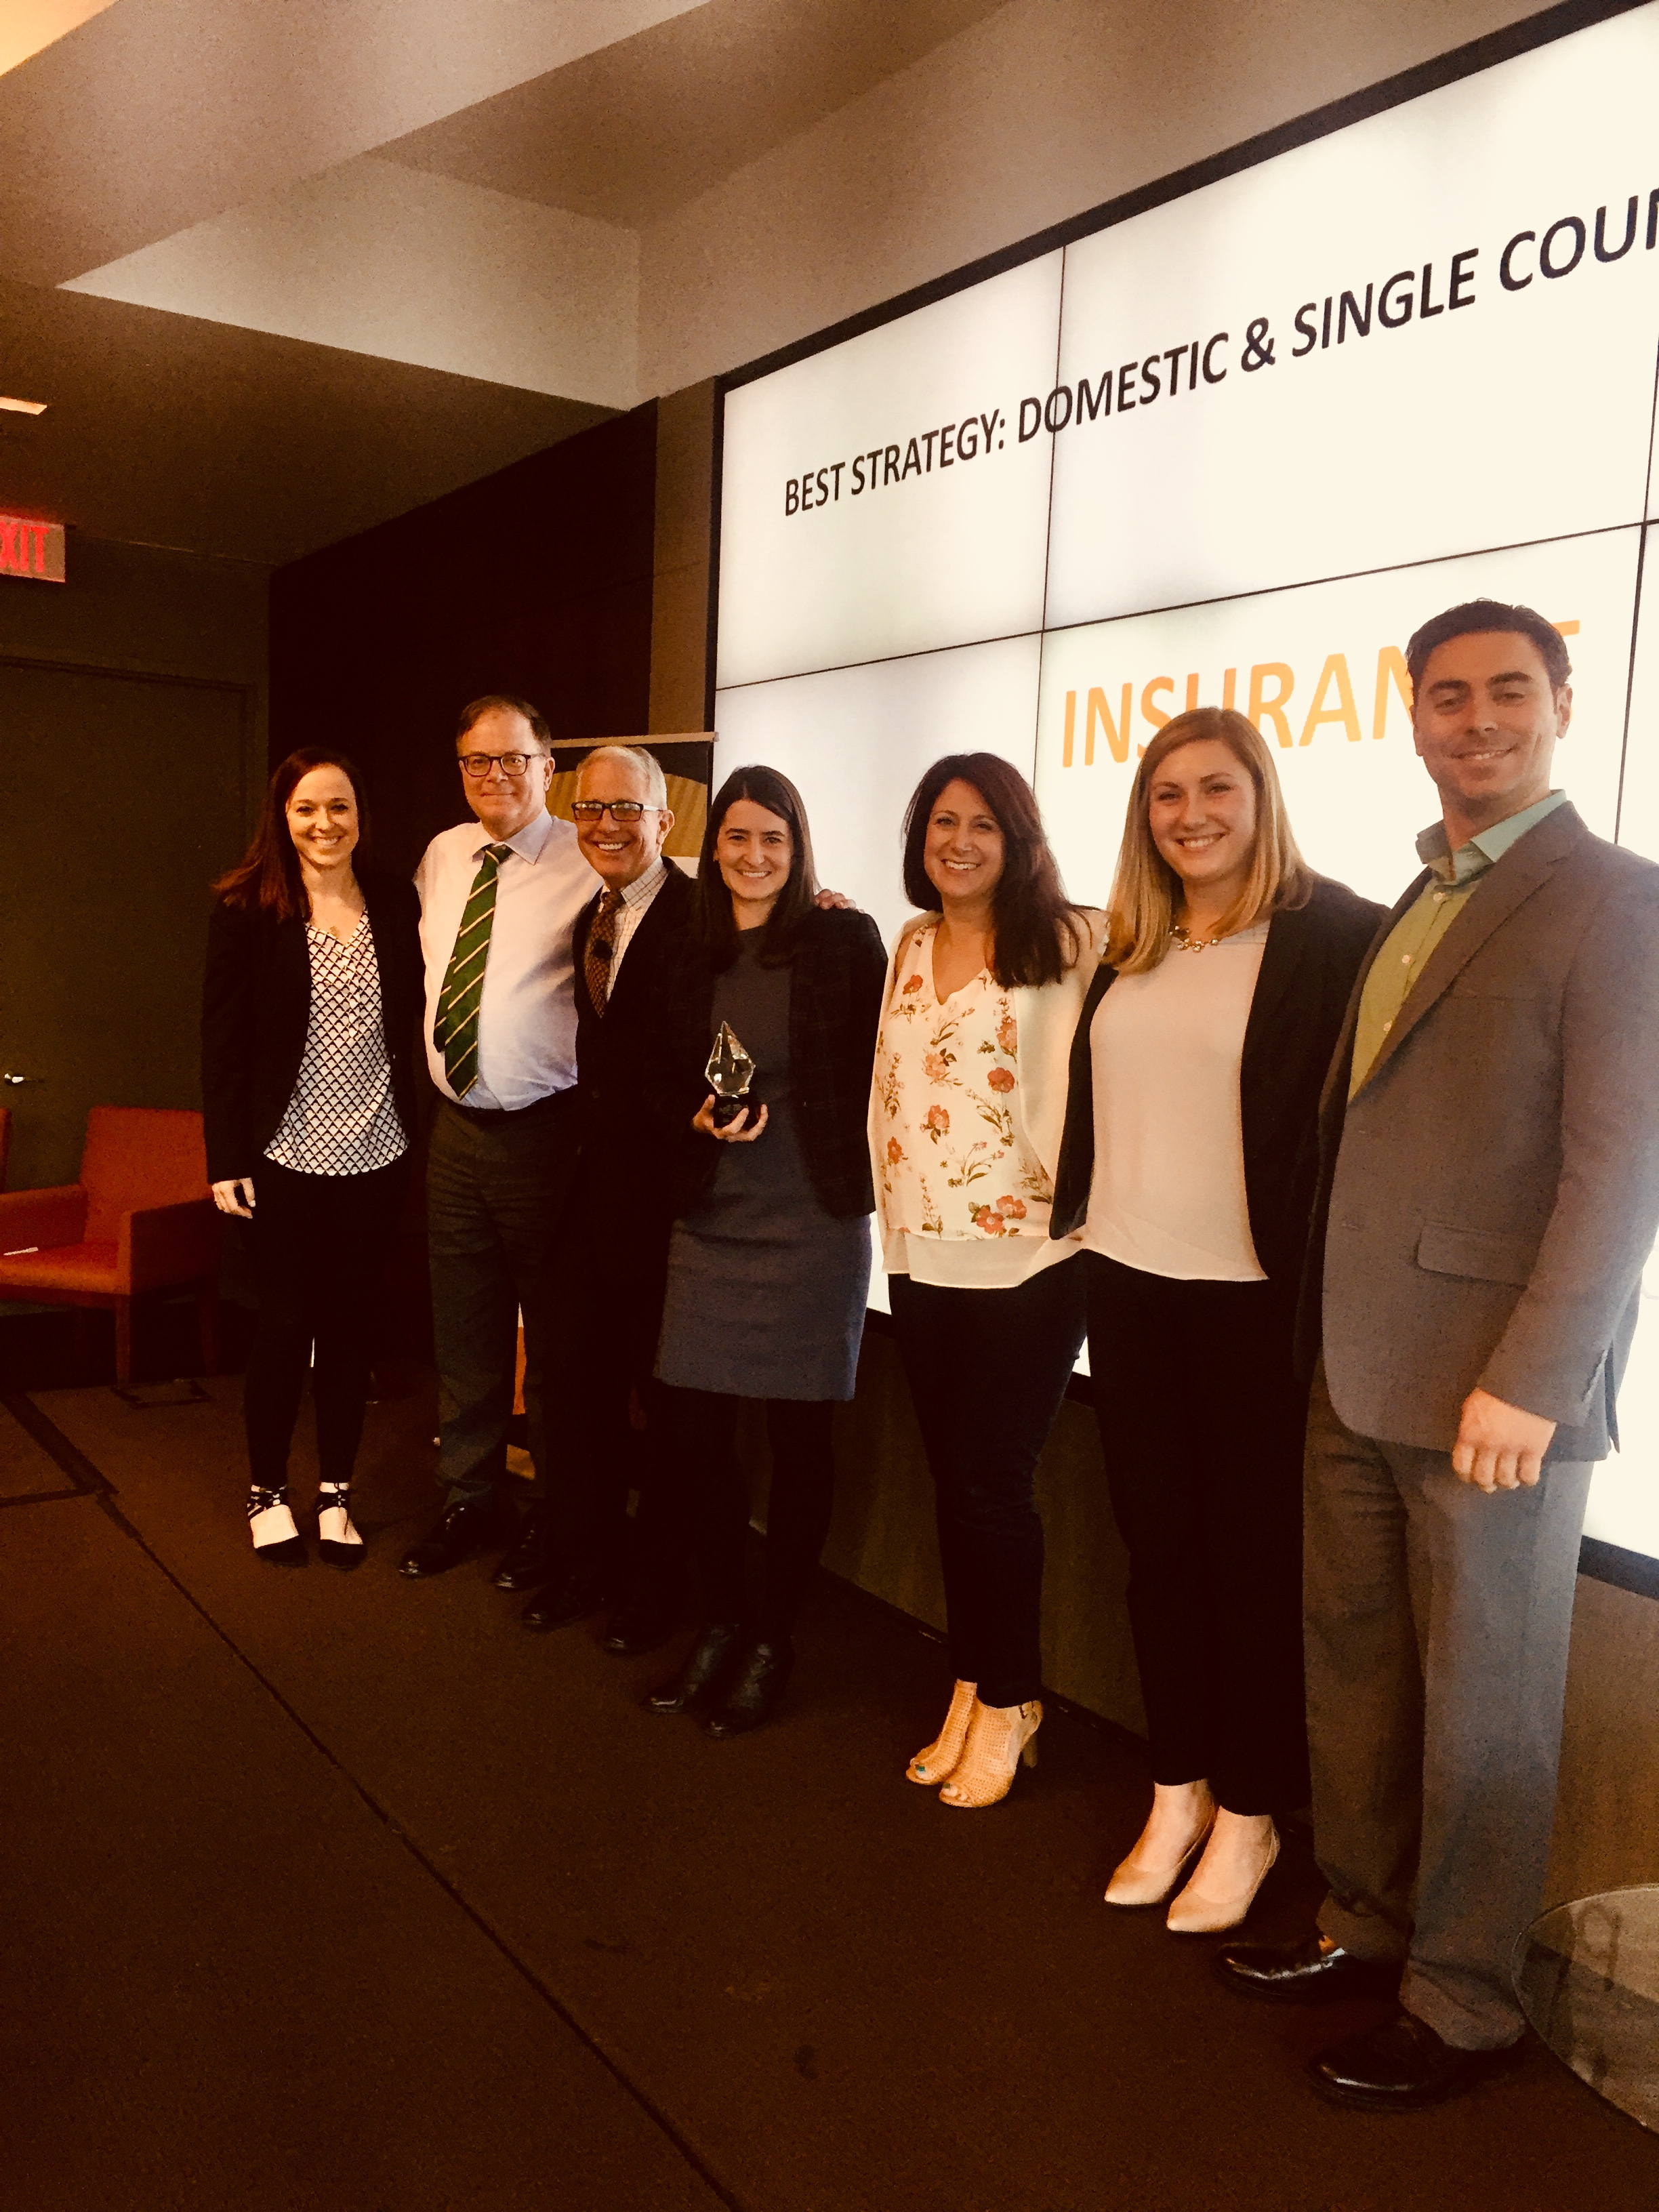 MERGE Boston and AIG Win Gramercy Award for Washington Post Cybersecure Content